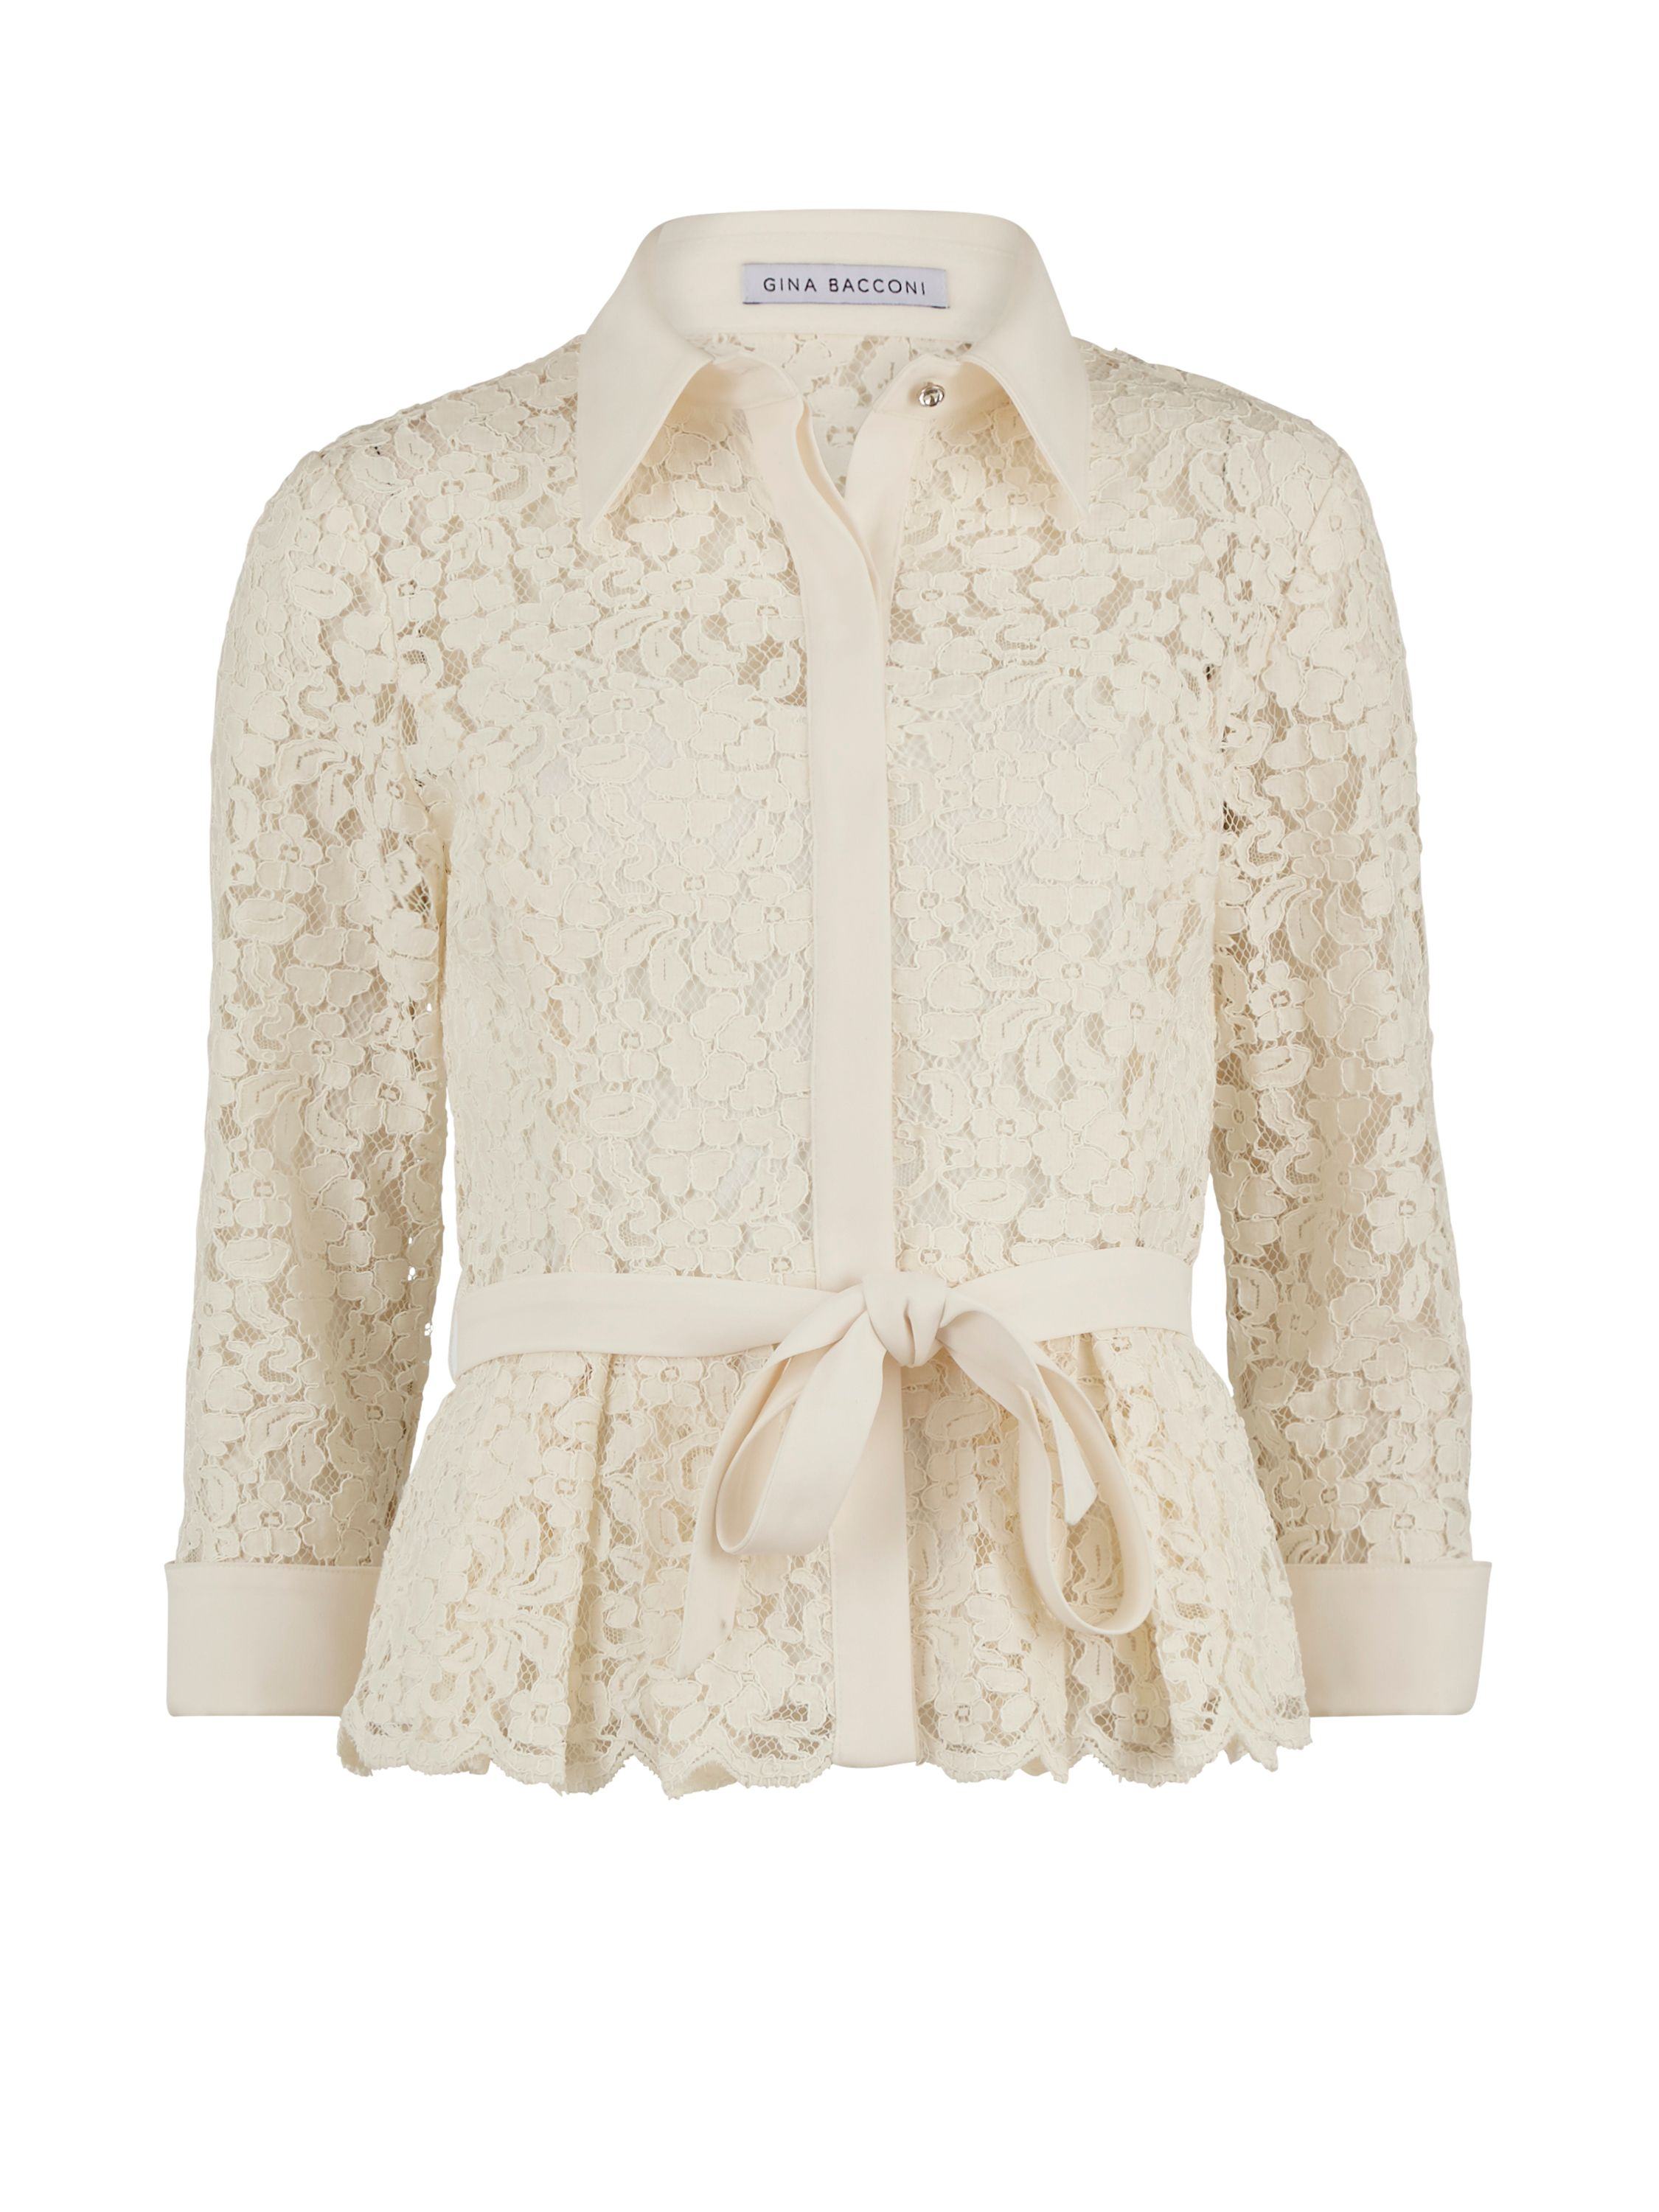 Gina Bacconi Lace Blouse With Contrast Trim And Belt, Cream